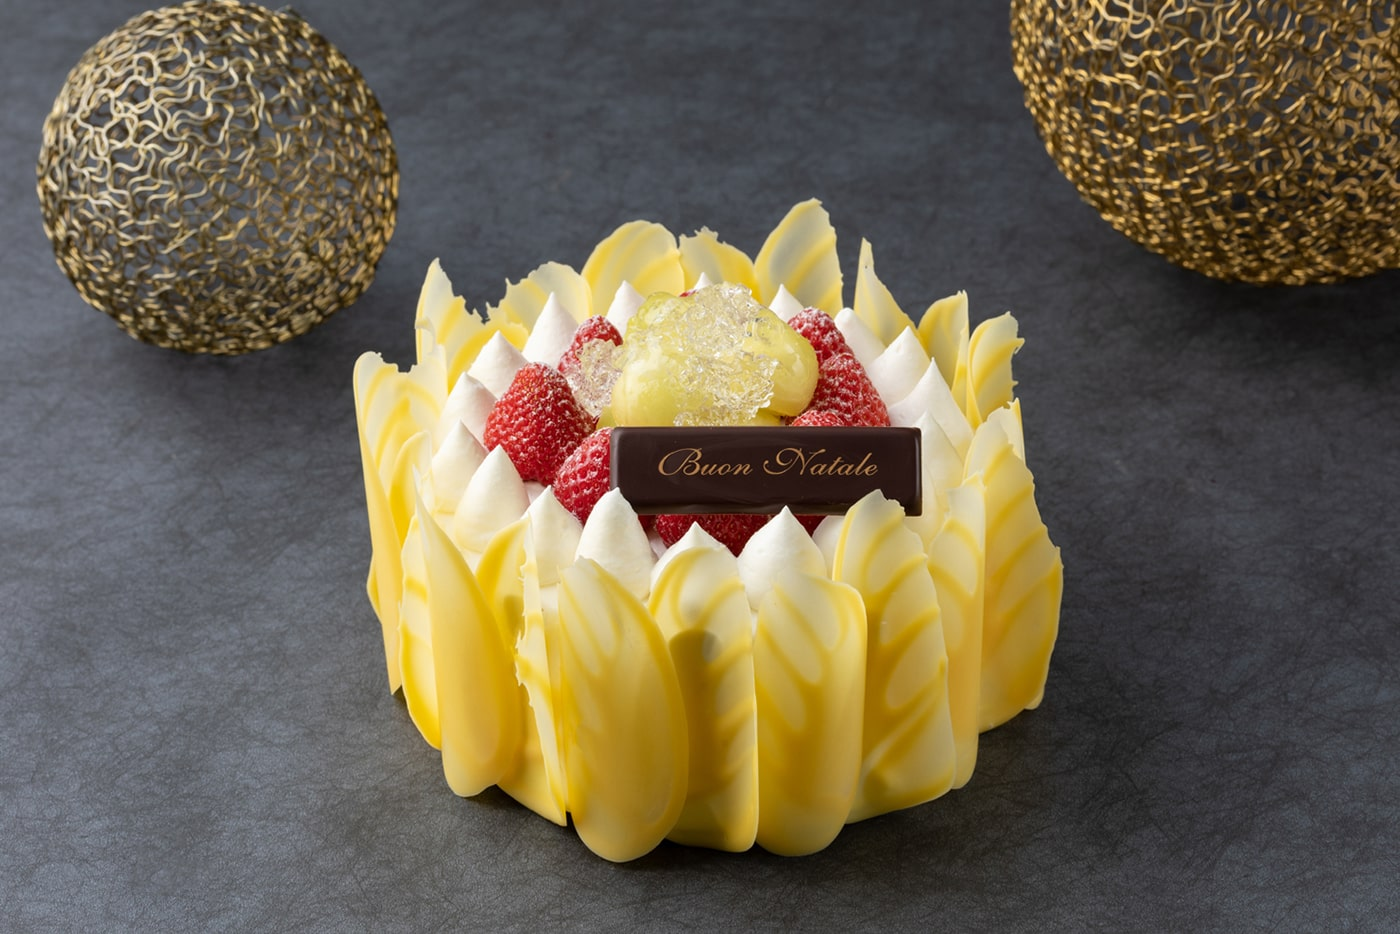 Fiorentina Pastry Boutique Christmas Cake 2019 Grand Premium  Fruit Shortcake 1400